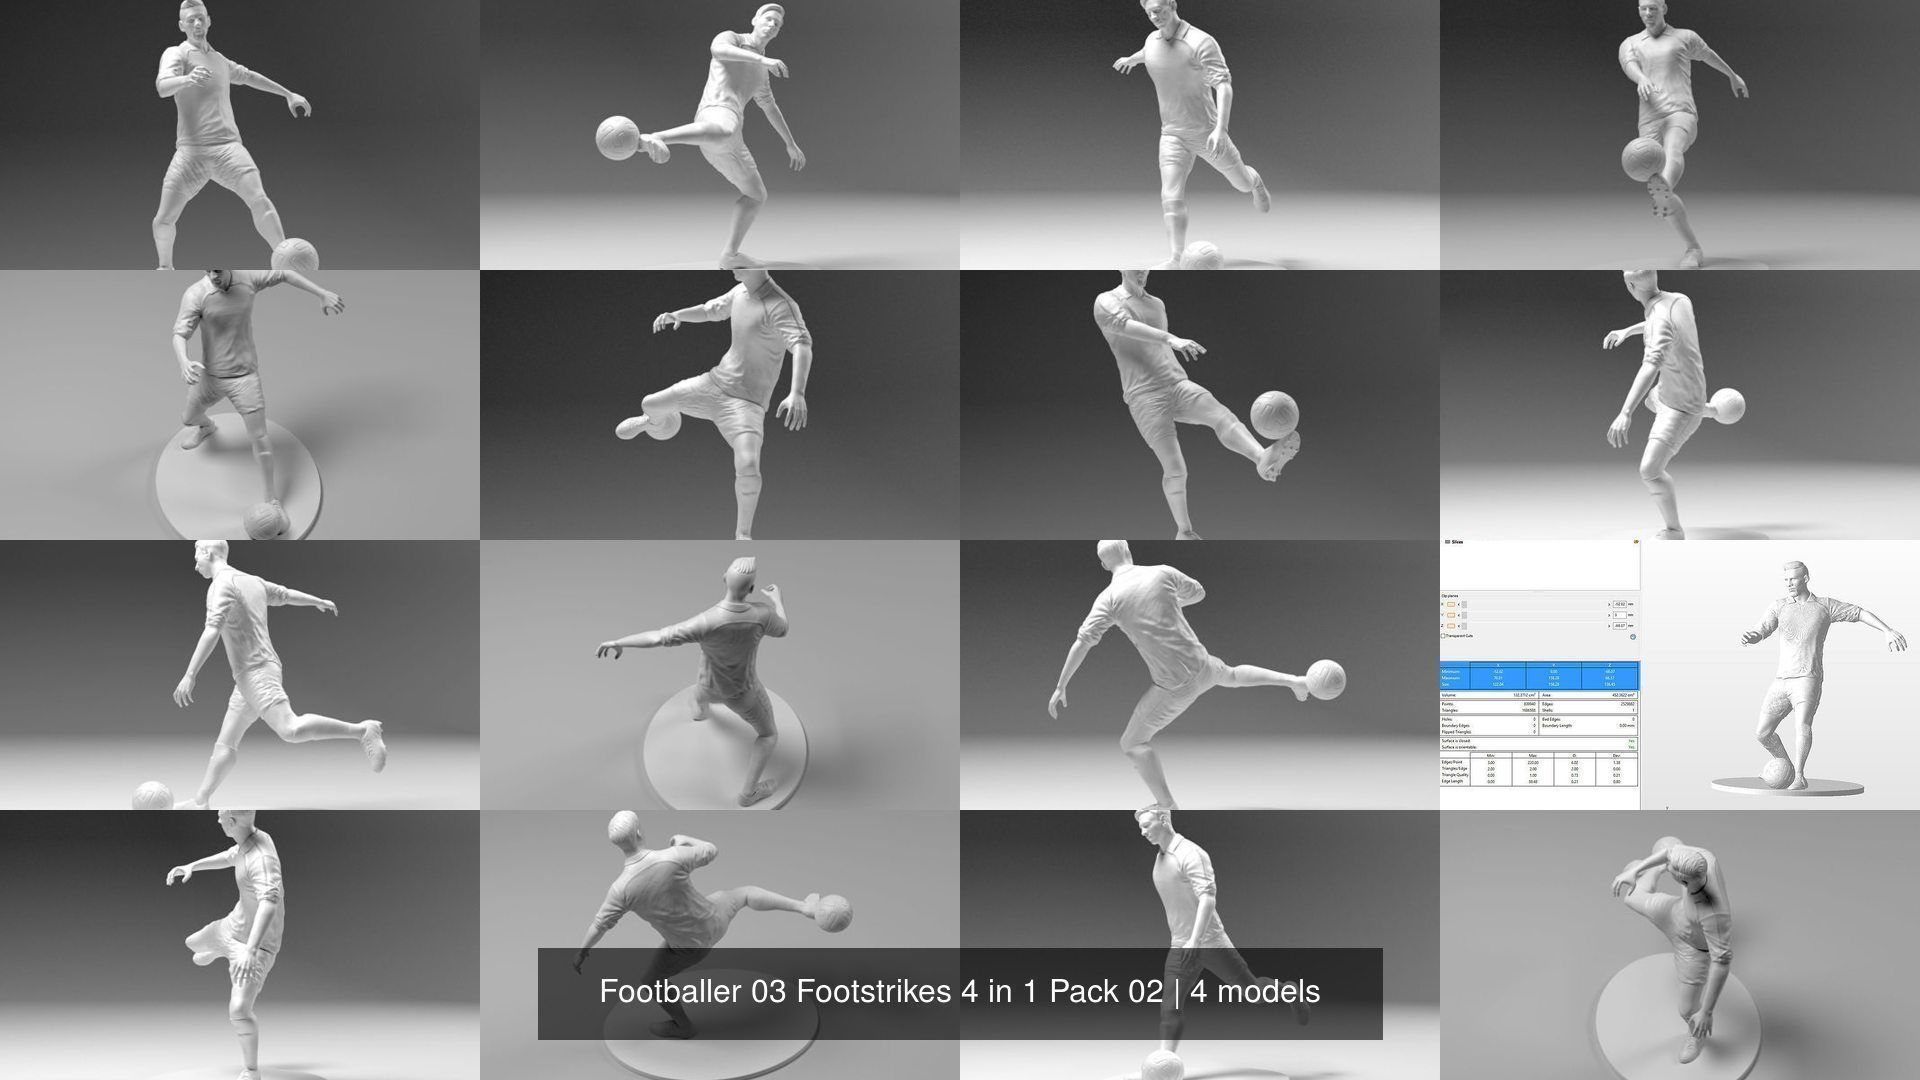 Footballer 03 Footstrikes 4 in 1 Pack 02